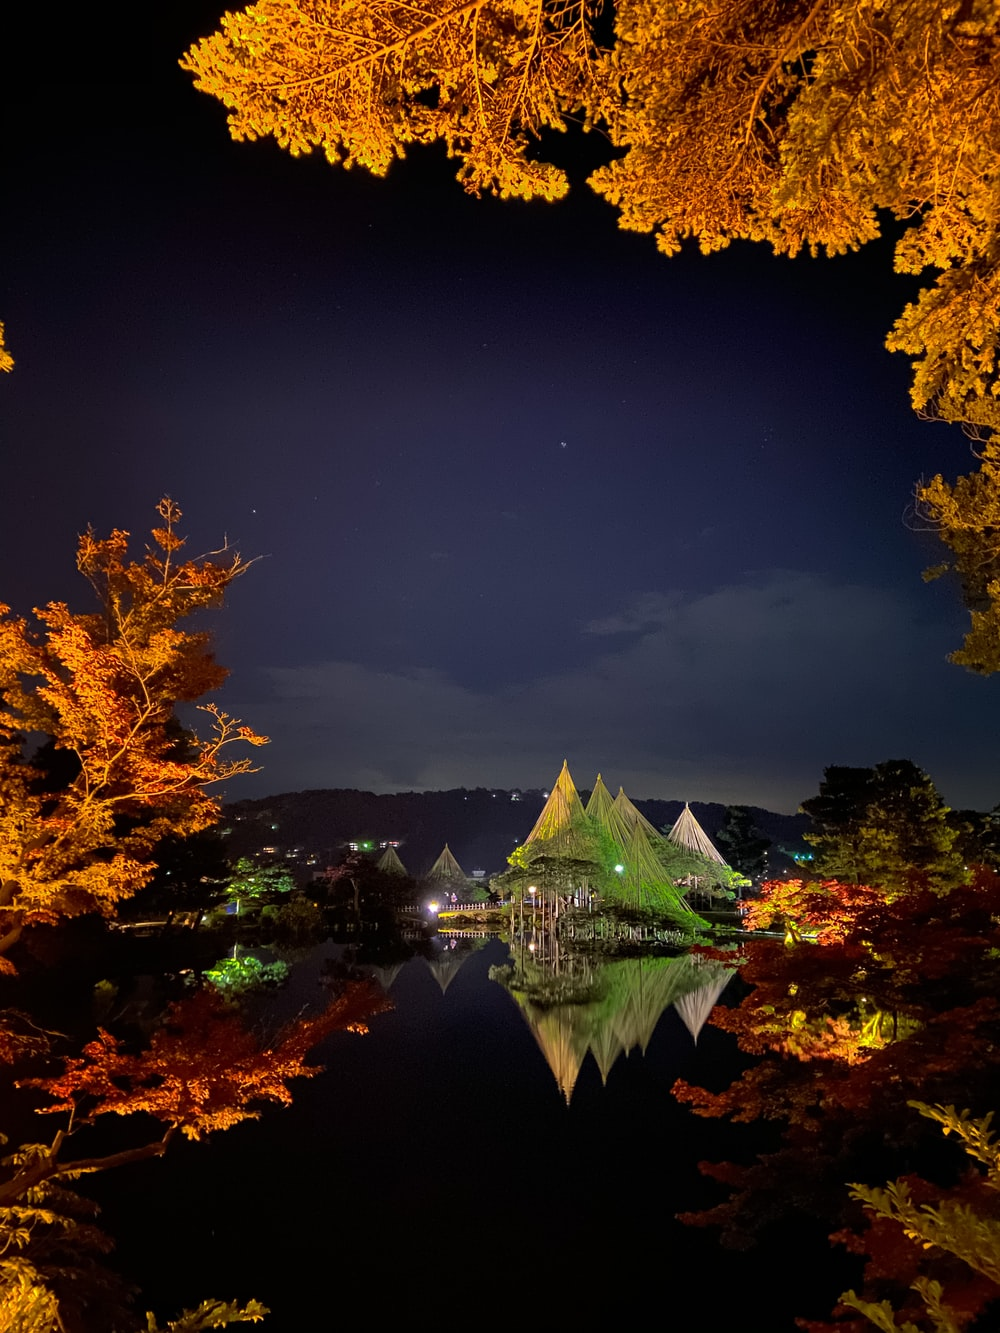 green and brown trees near body of water during night time